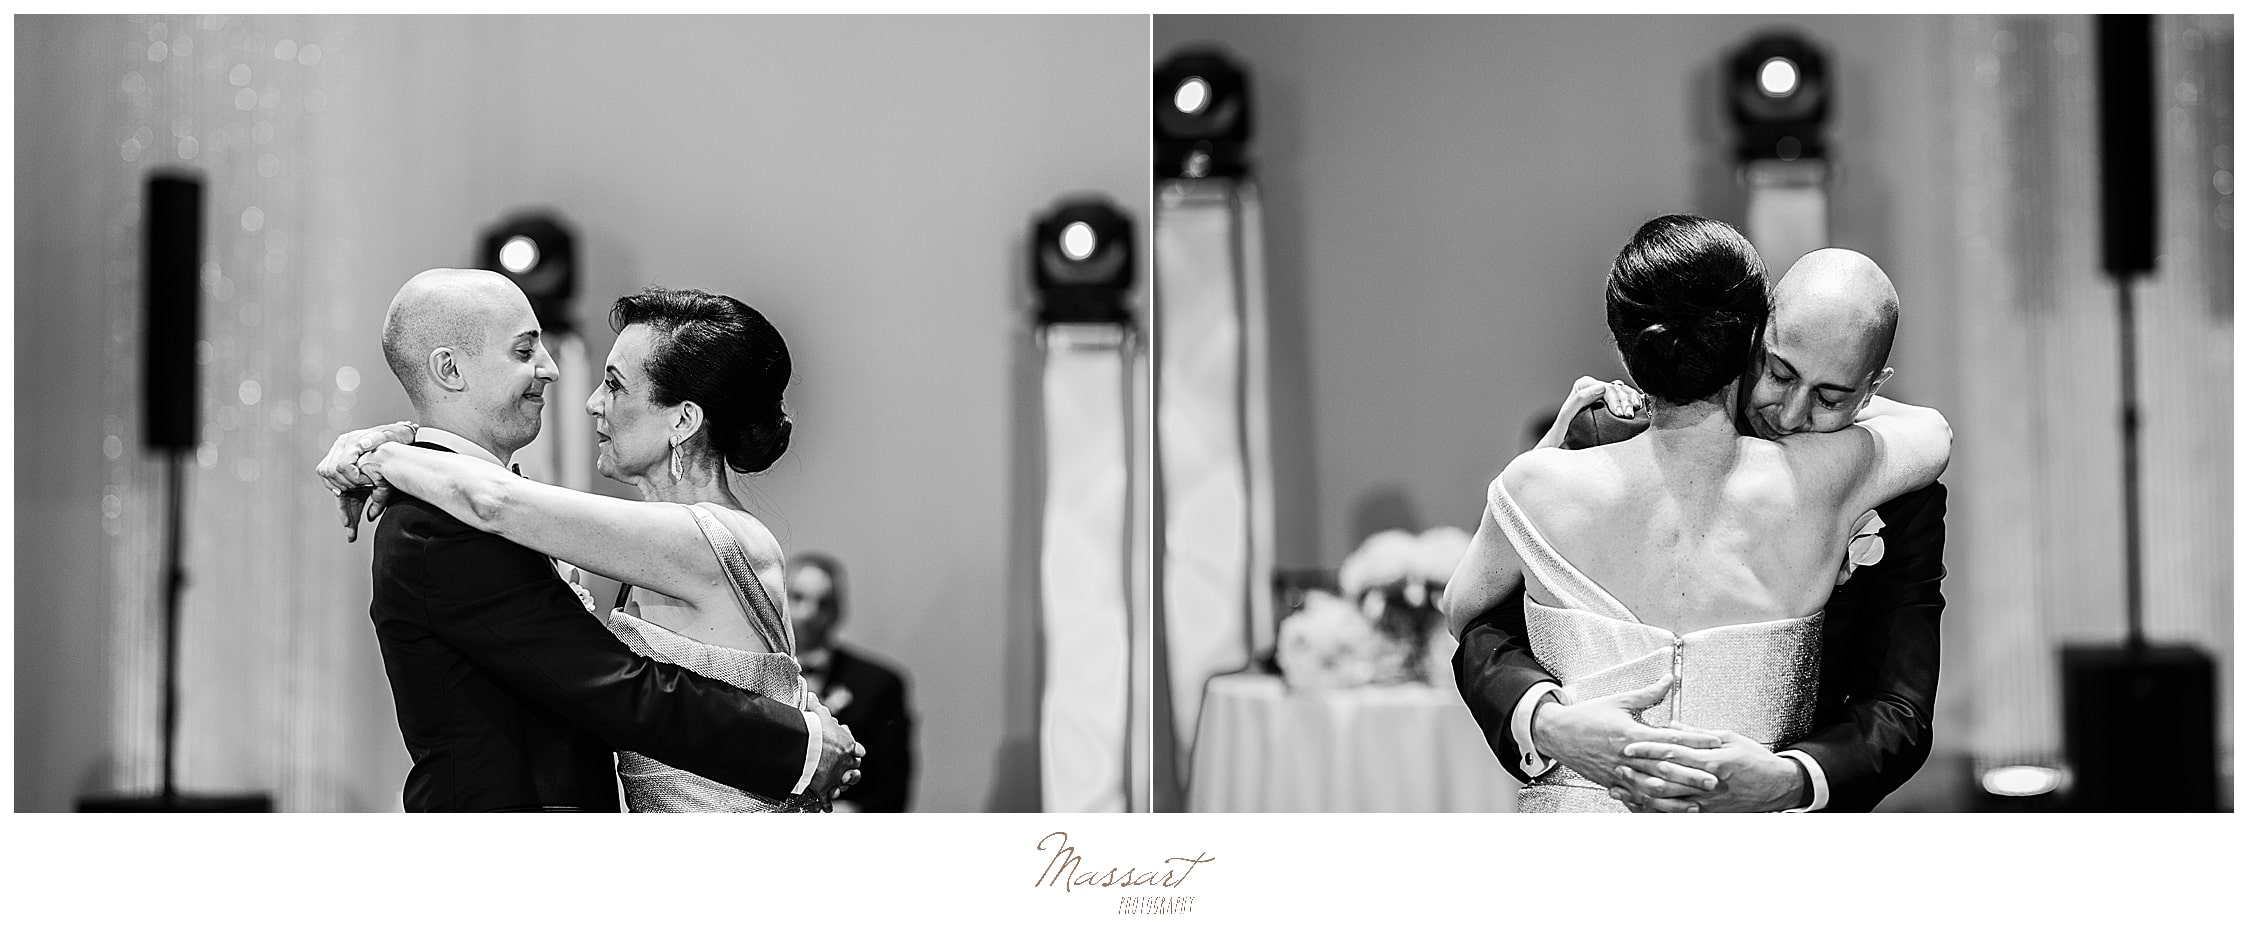 mother-son wedding dance photographed by CT wedding photographers Massart Photography